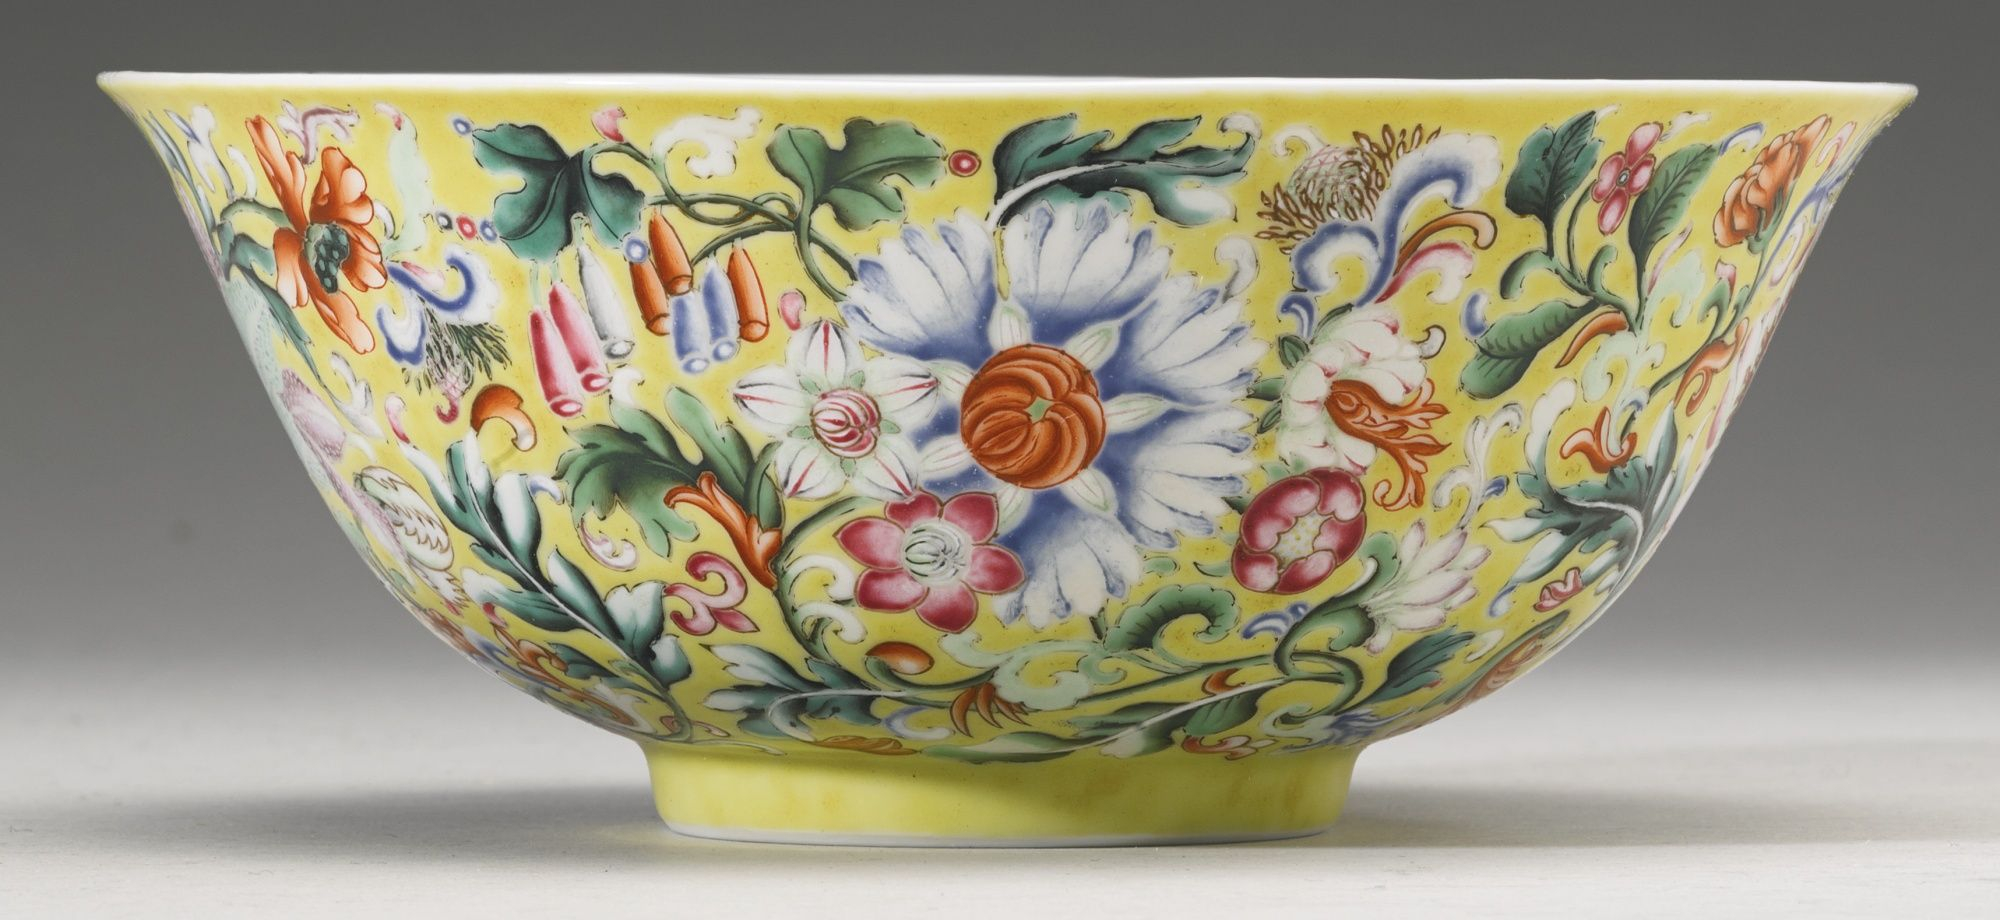 Image result for A FINE AND RARE YELLOW-GROUND ENAMELED 'FLORAL' BOWL QIANLONG SEAL MARK AND PERIOD